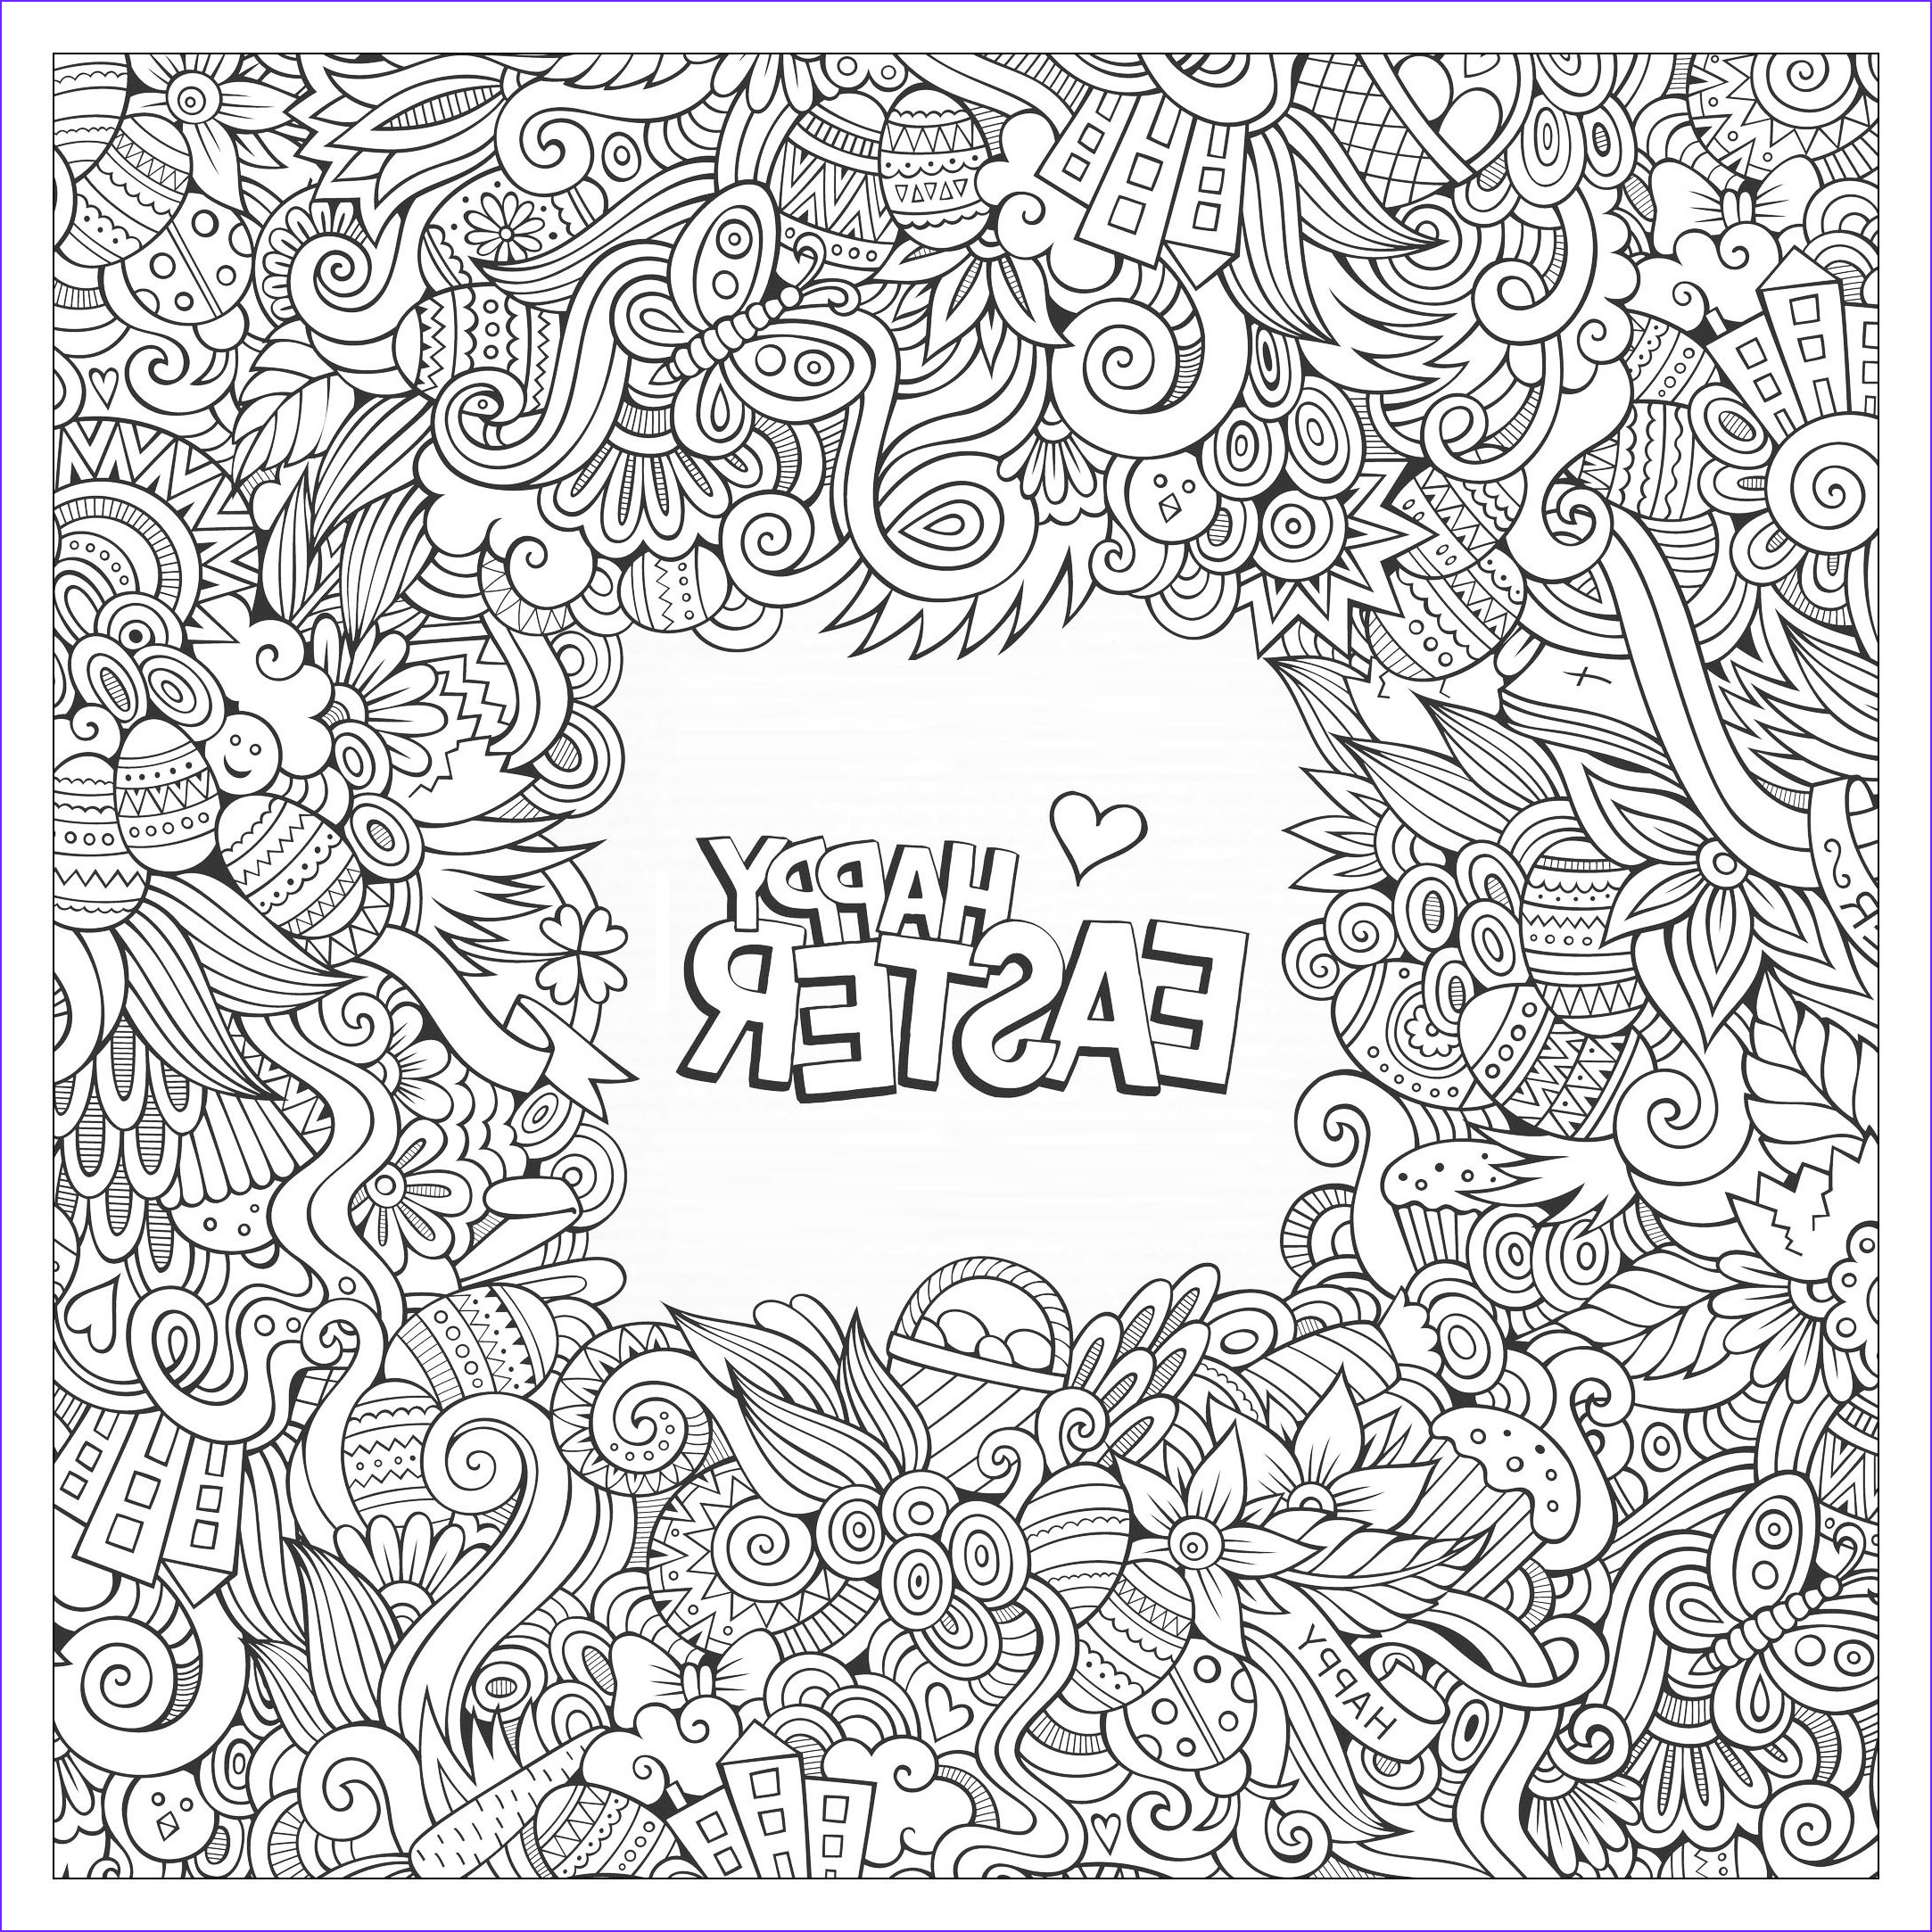 Coloring Adult Cool Collection Easter Coloring Pages for Adults Best Coloring Pages for